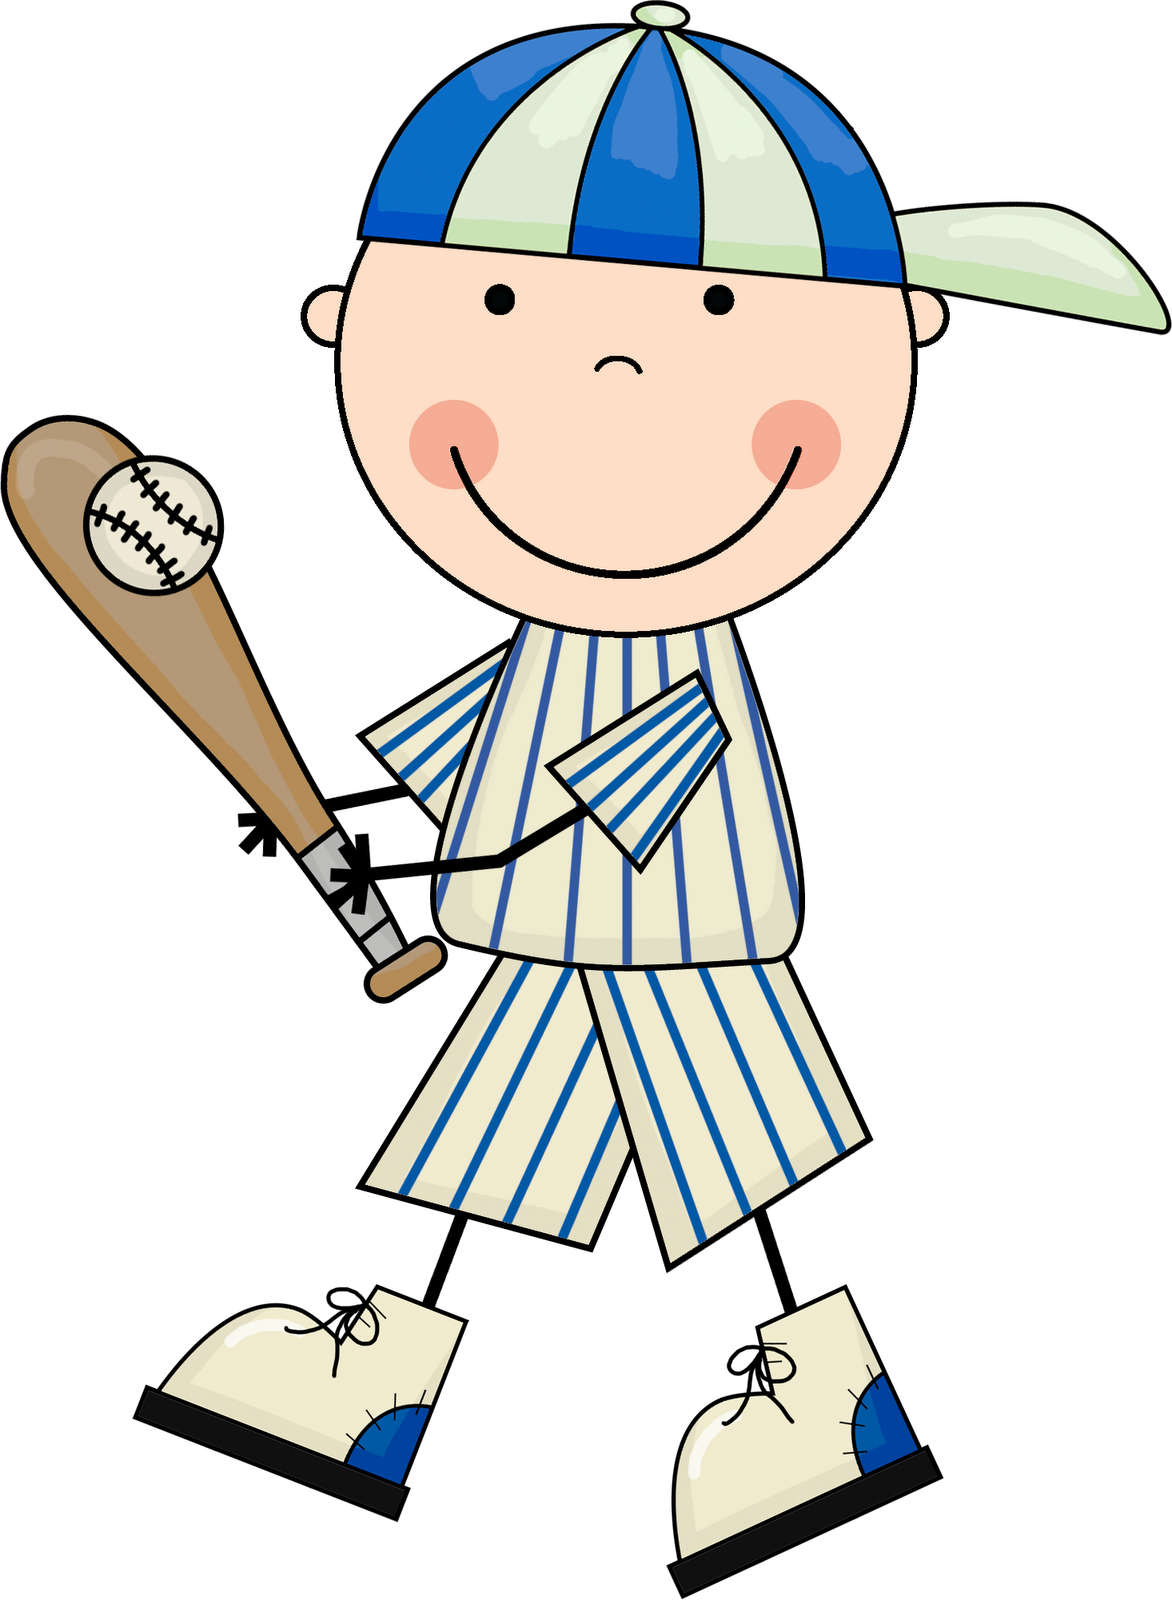 Kids baseball clipart image transparent stock Baseball borders clipart kid - Clipartix image transparent stock